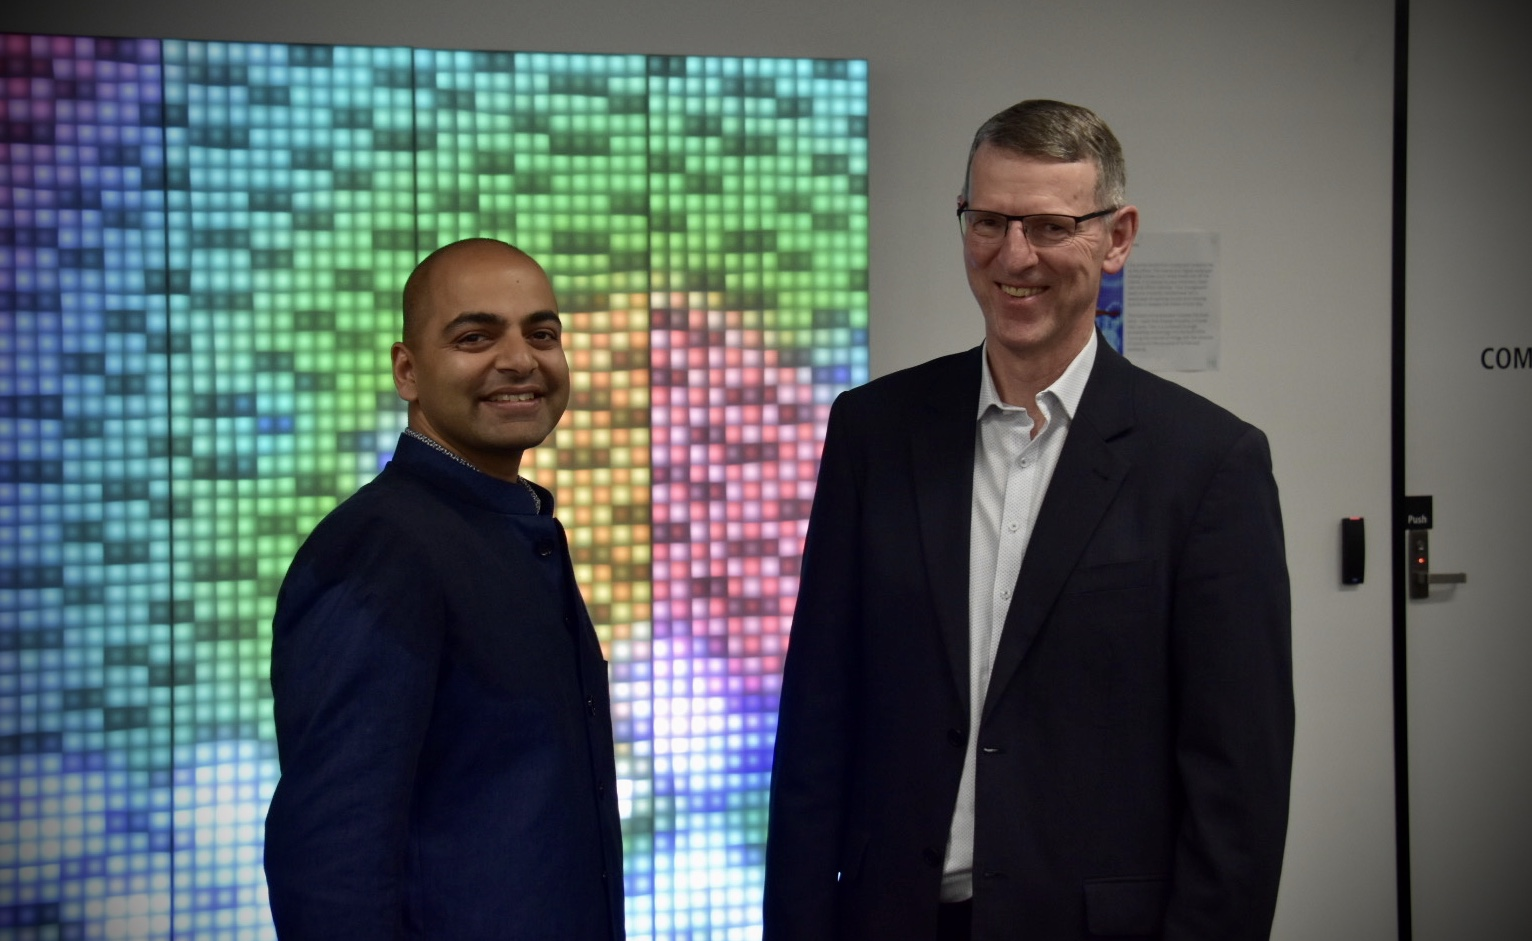 Director of the new Health Transformation Lab Vishaal Kishore and Brendan Lovelock, Health Practice Lead at Cisco Systems.